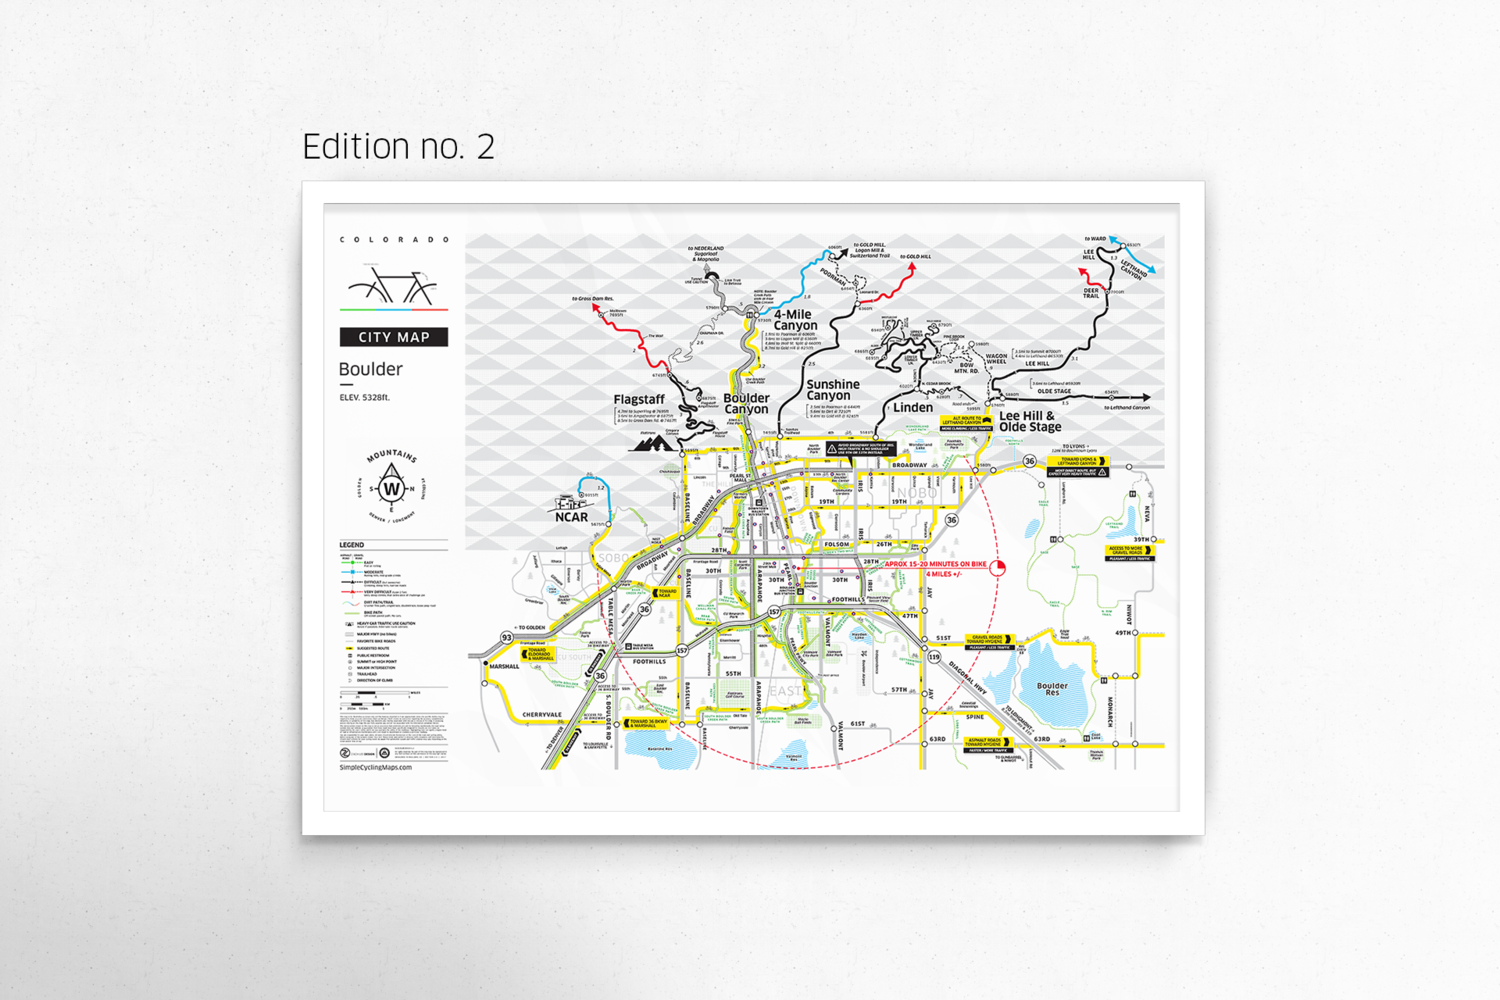 Boulder City Map Poster // Edition 2 — Boulder Bike Map on